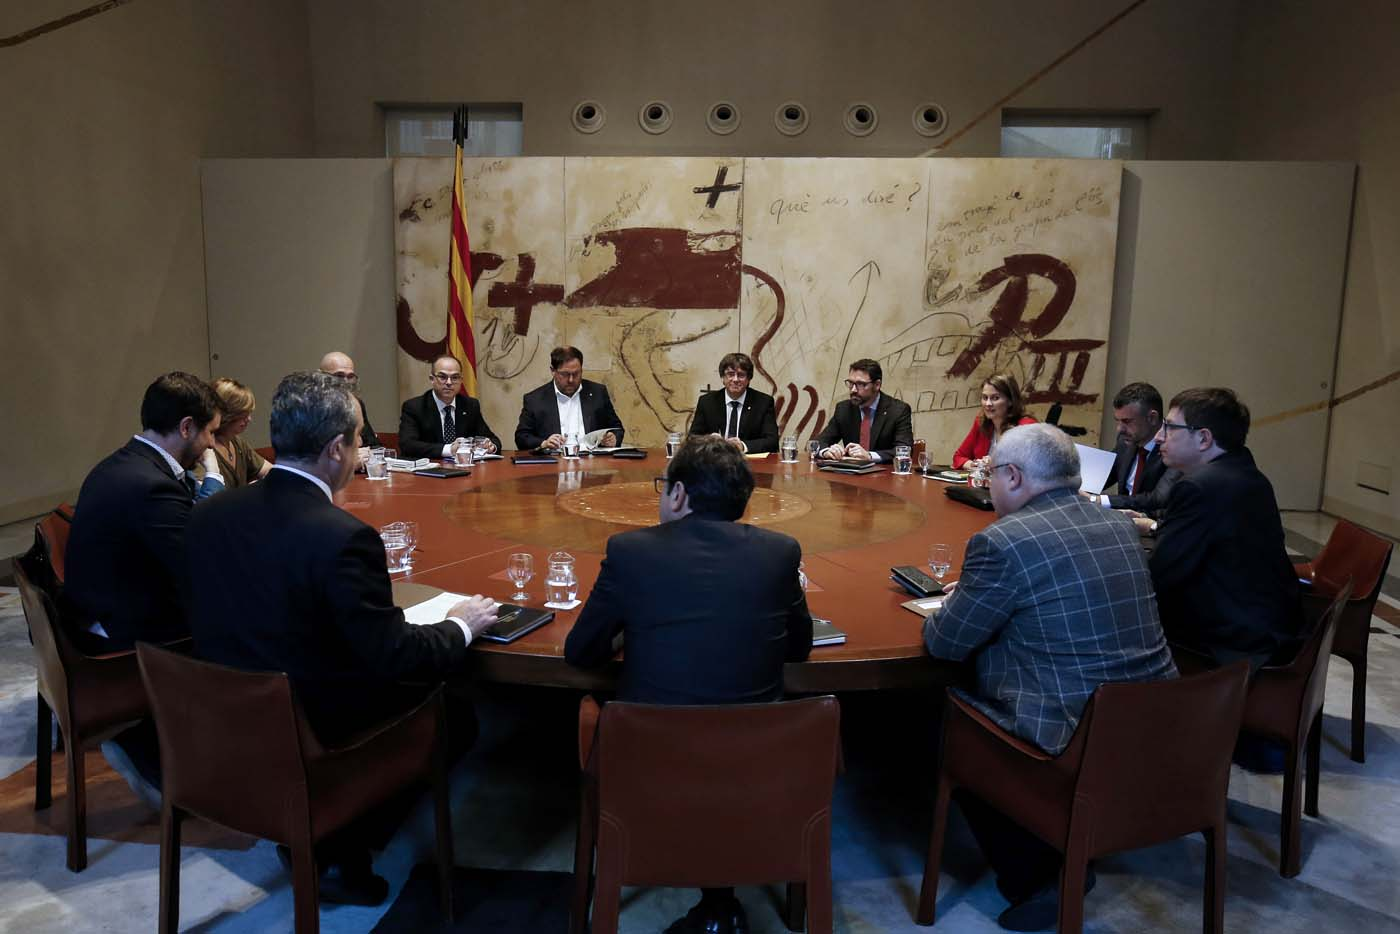 Catalan regional government president Carles Puigdemont (C) chairs a regional government meeting at the Generalitat Palace in Barcelona on October 10, 2017. Spain's worst political crisis in a generation will come to a head as Catalonia's leader could declare independence from Madrid in a move likely to send shockwaves through Europe. / AFP PHOTO / PAU BARRENA